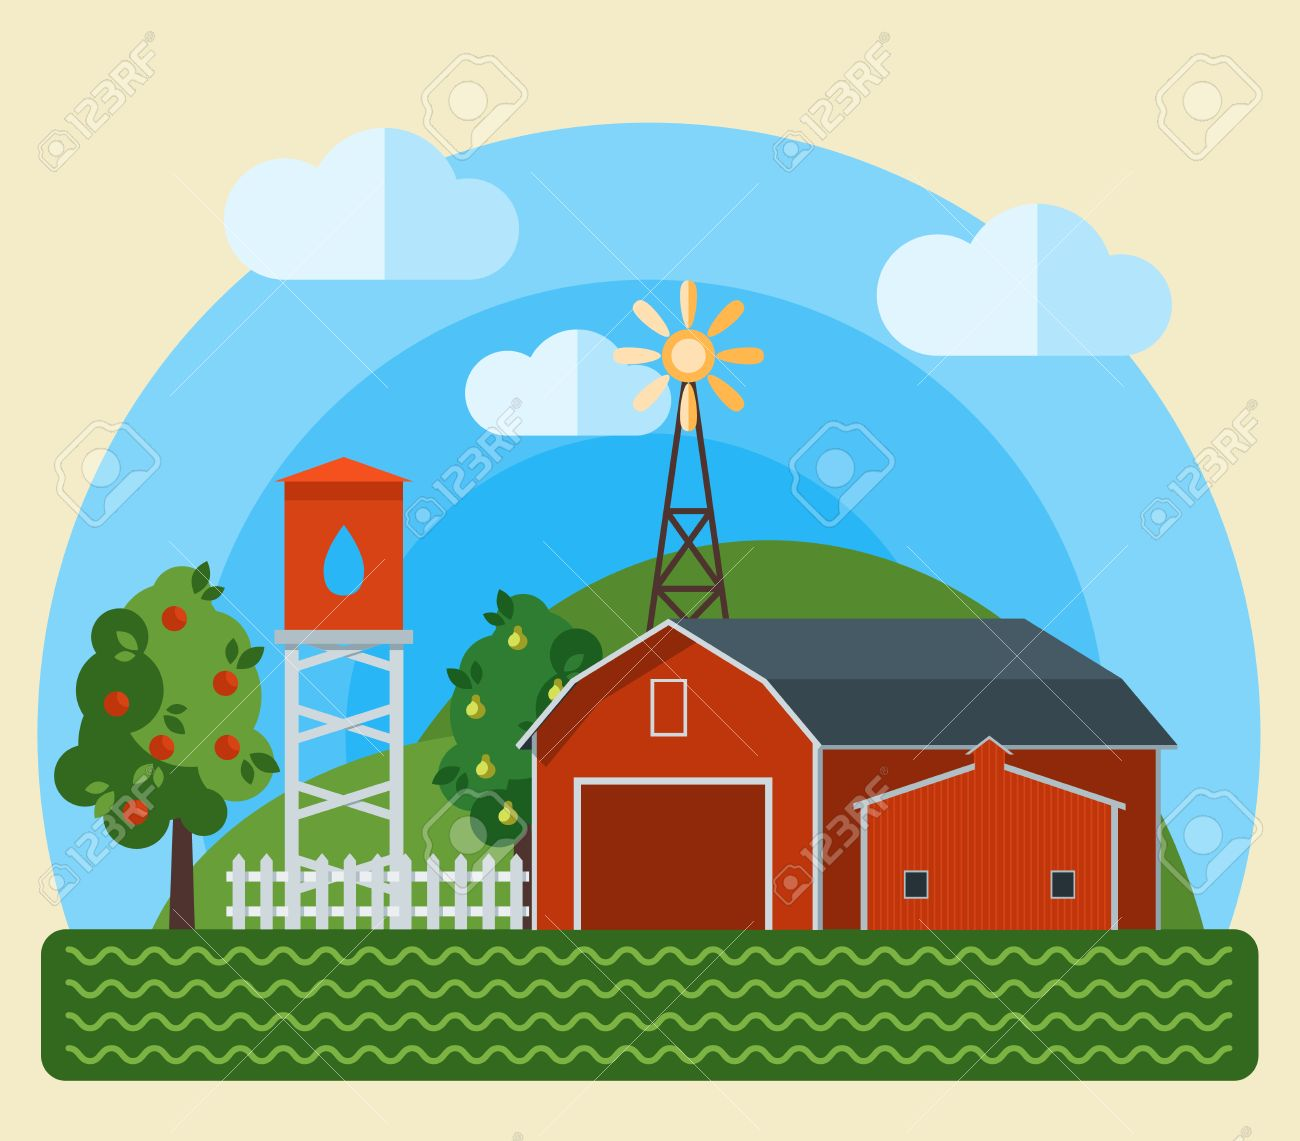 Flat Farm Landscape Illustration With Farmhouse Fields Pond Sunflowers And Animals